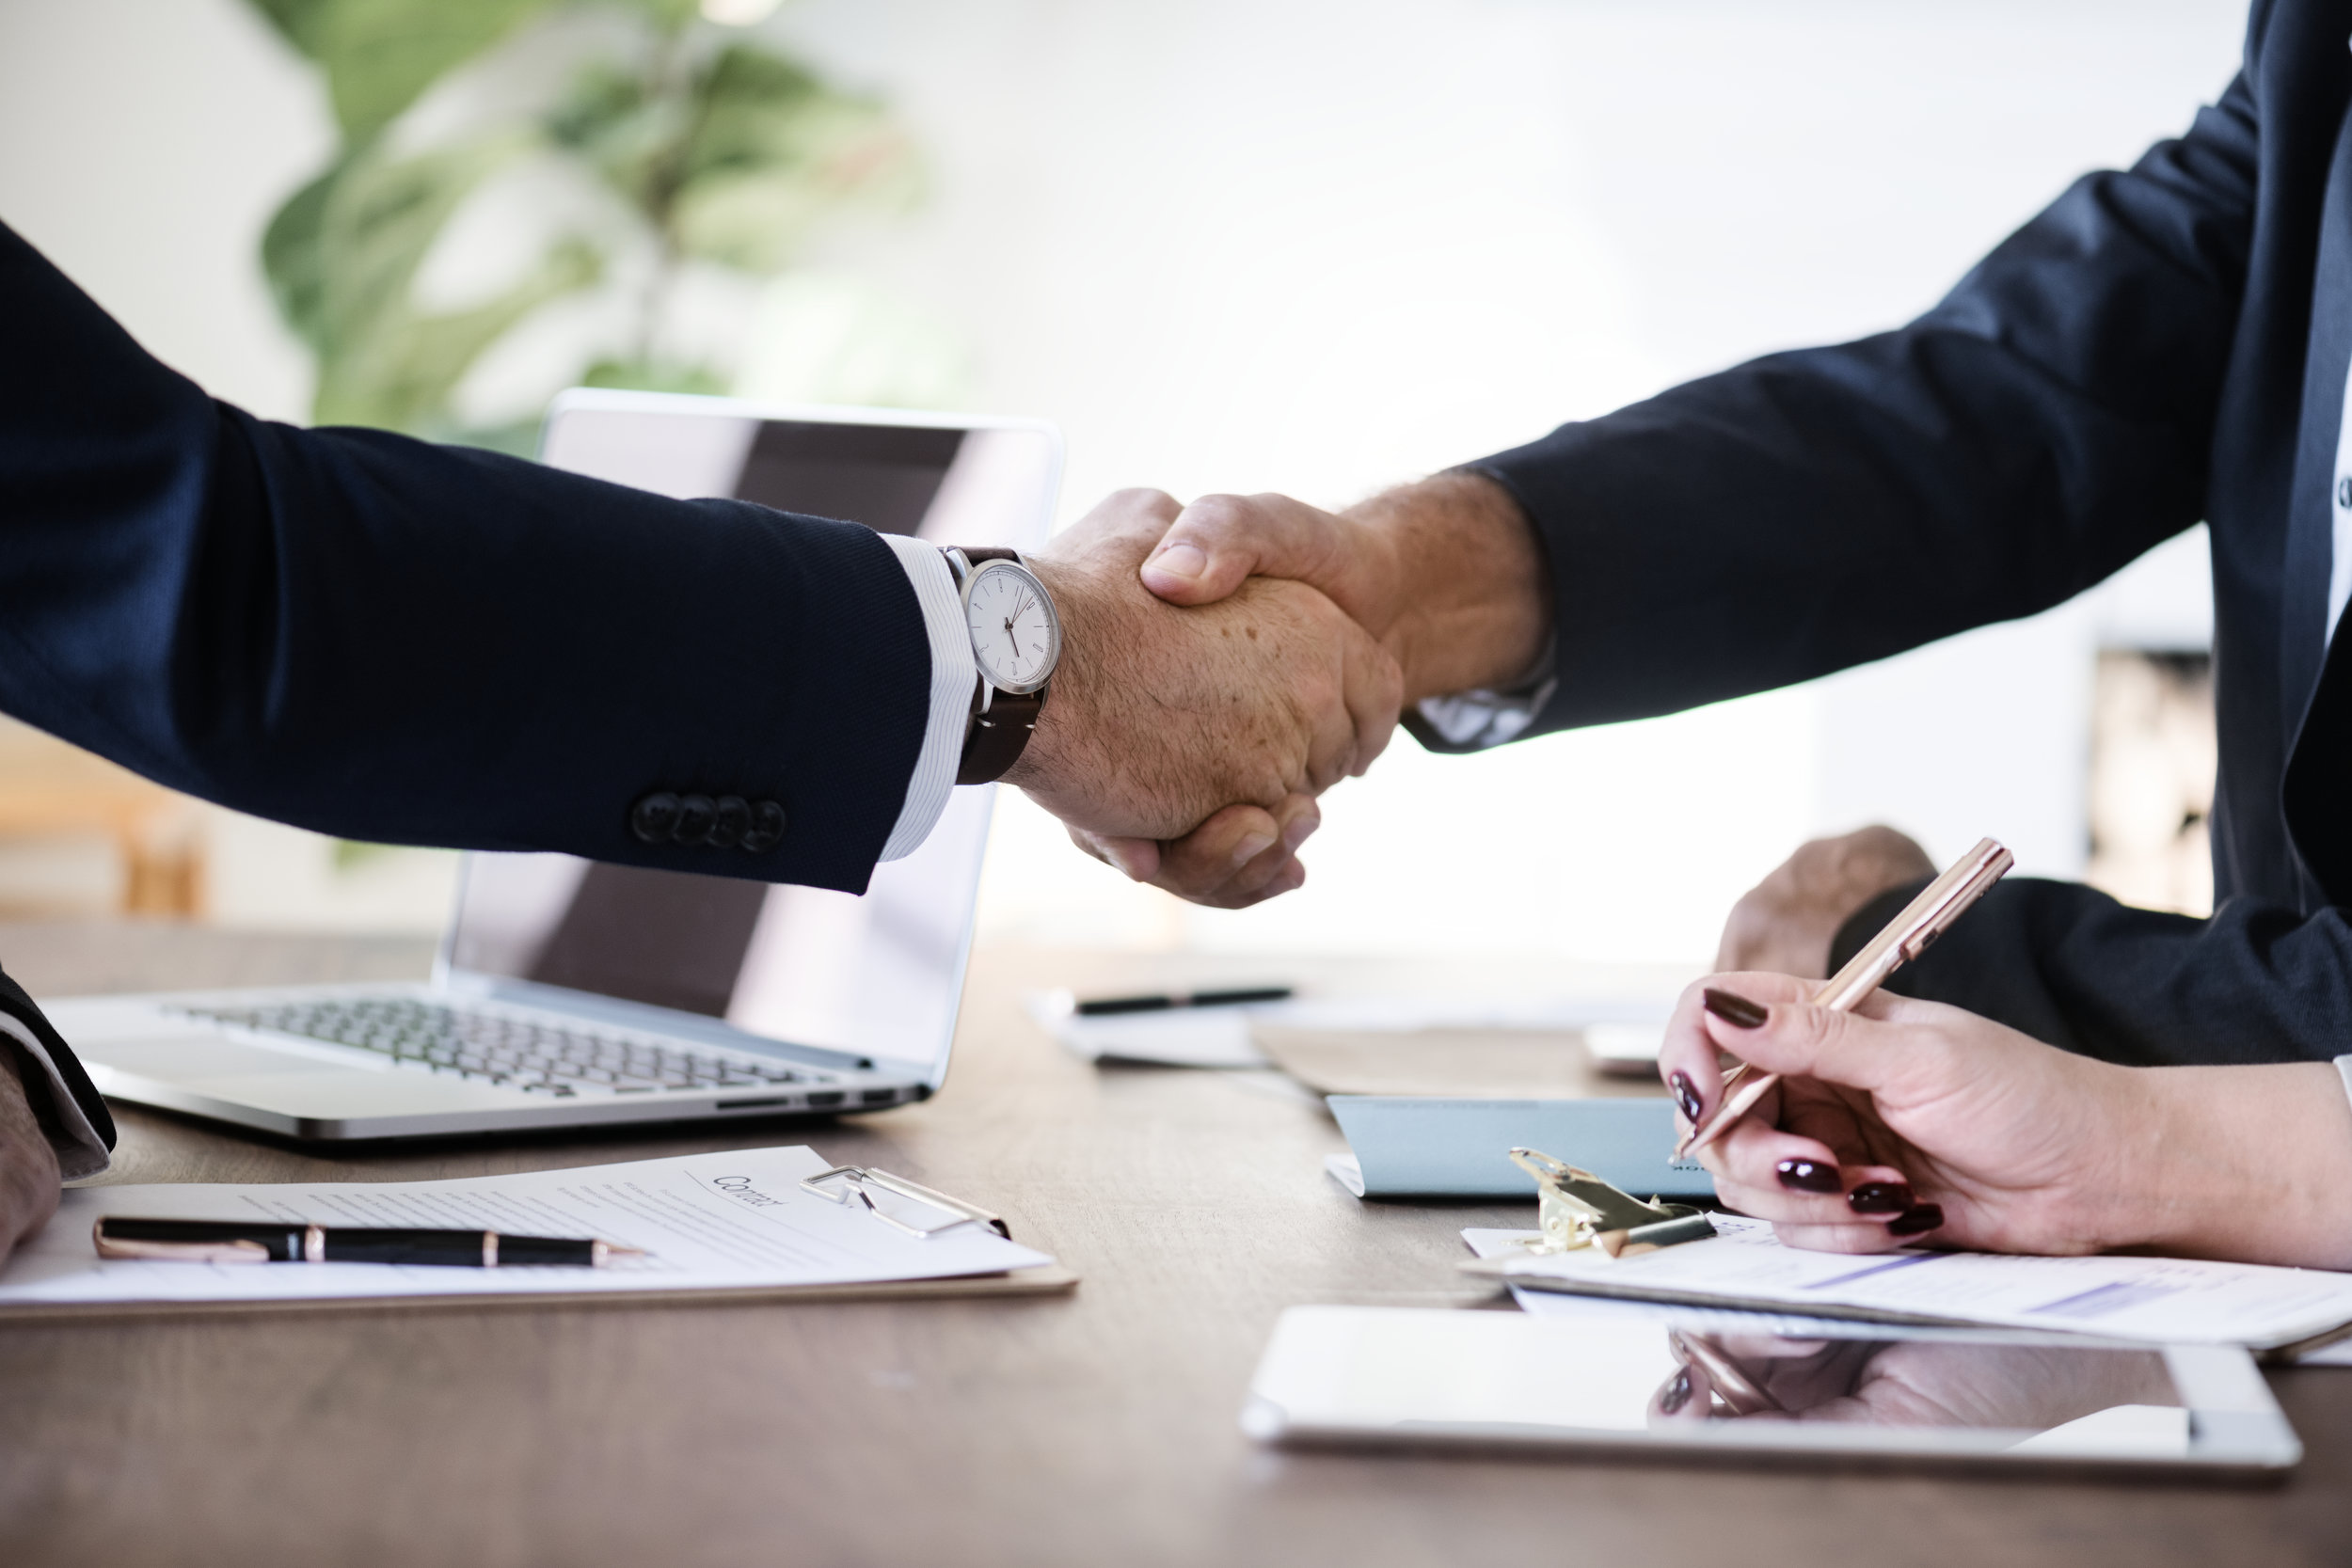 F-BOM Services - Our comprehensive list of services that can help you run your business from start to finish. We partner with you to ensure continued success.